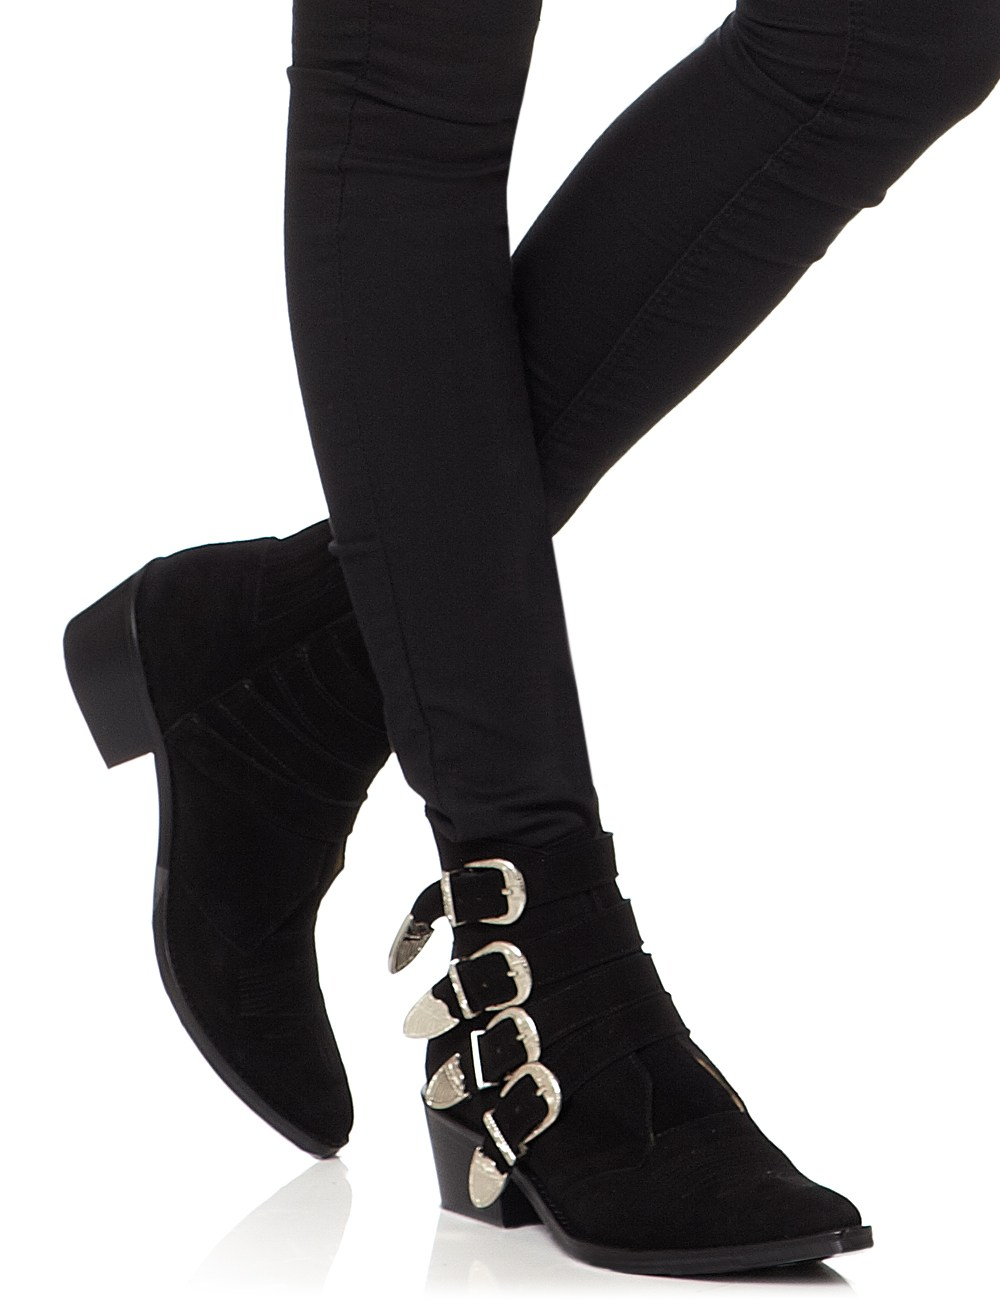 Toga pulla Black Suede Buckled Boots in Black | Lyst